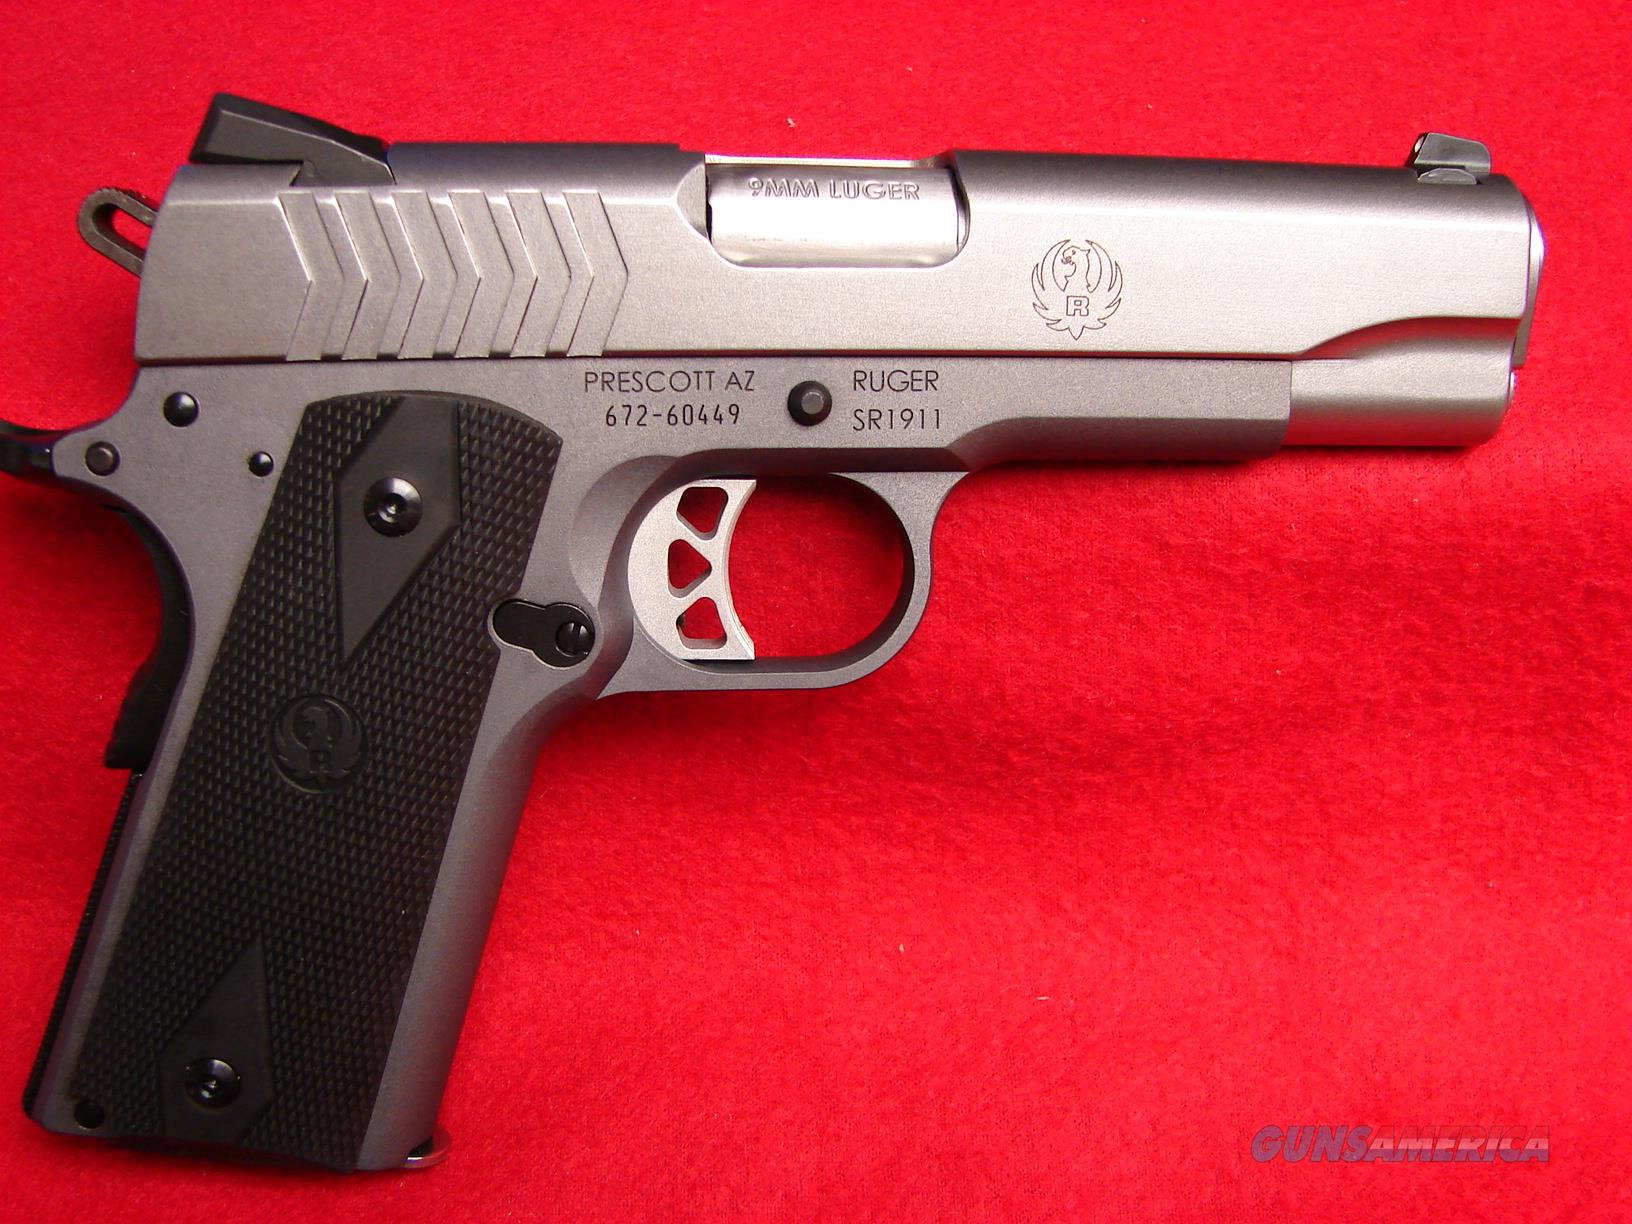 New Ruger Sr 1911 In 9mm Just Released By Rug For Sale